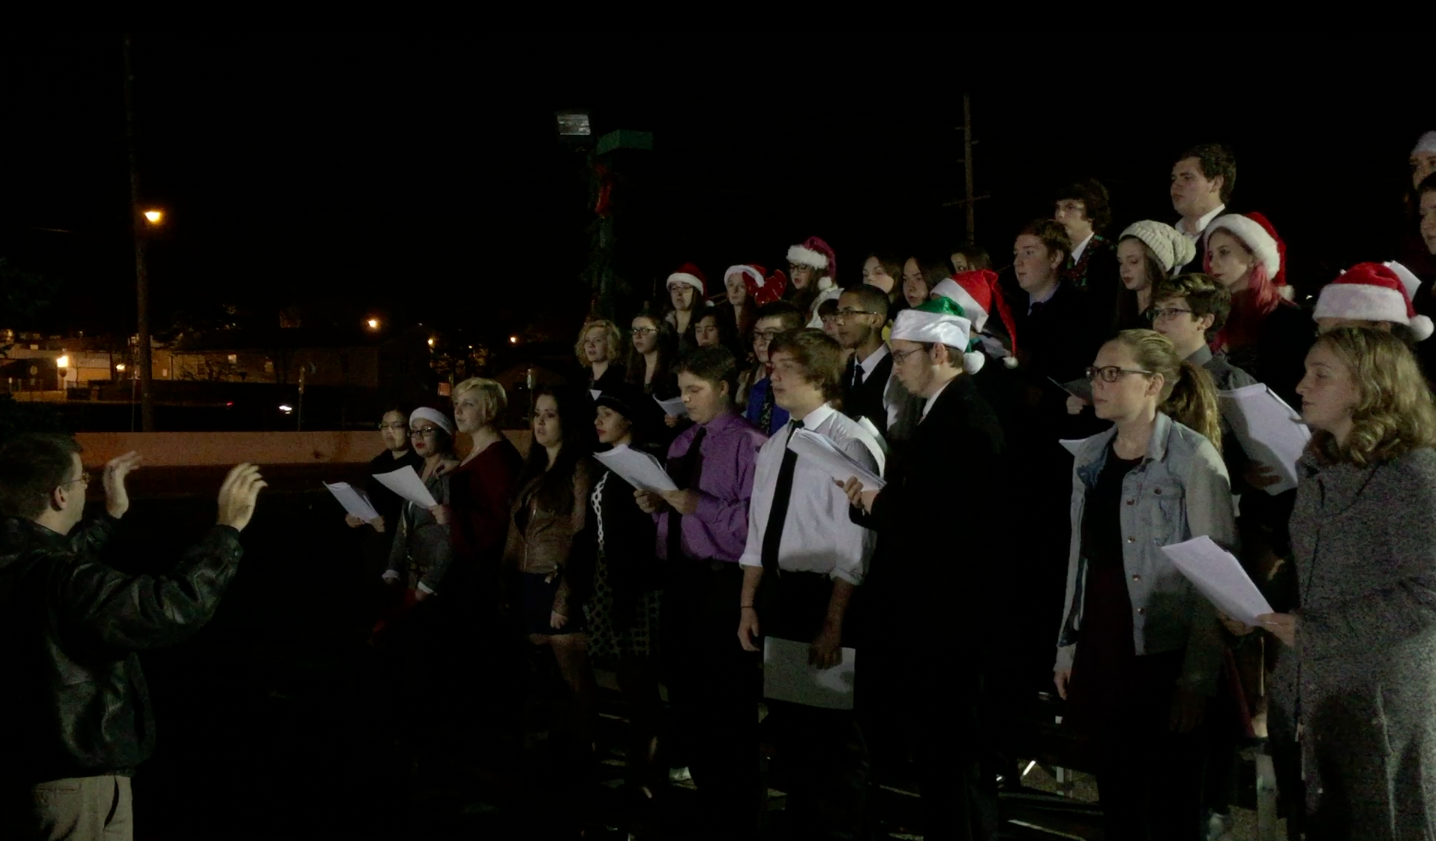 The Brick Memorial High School caroling choir performs at the annual township Christmas tree lighting. (Photo: Daniel Nee)